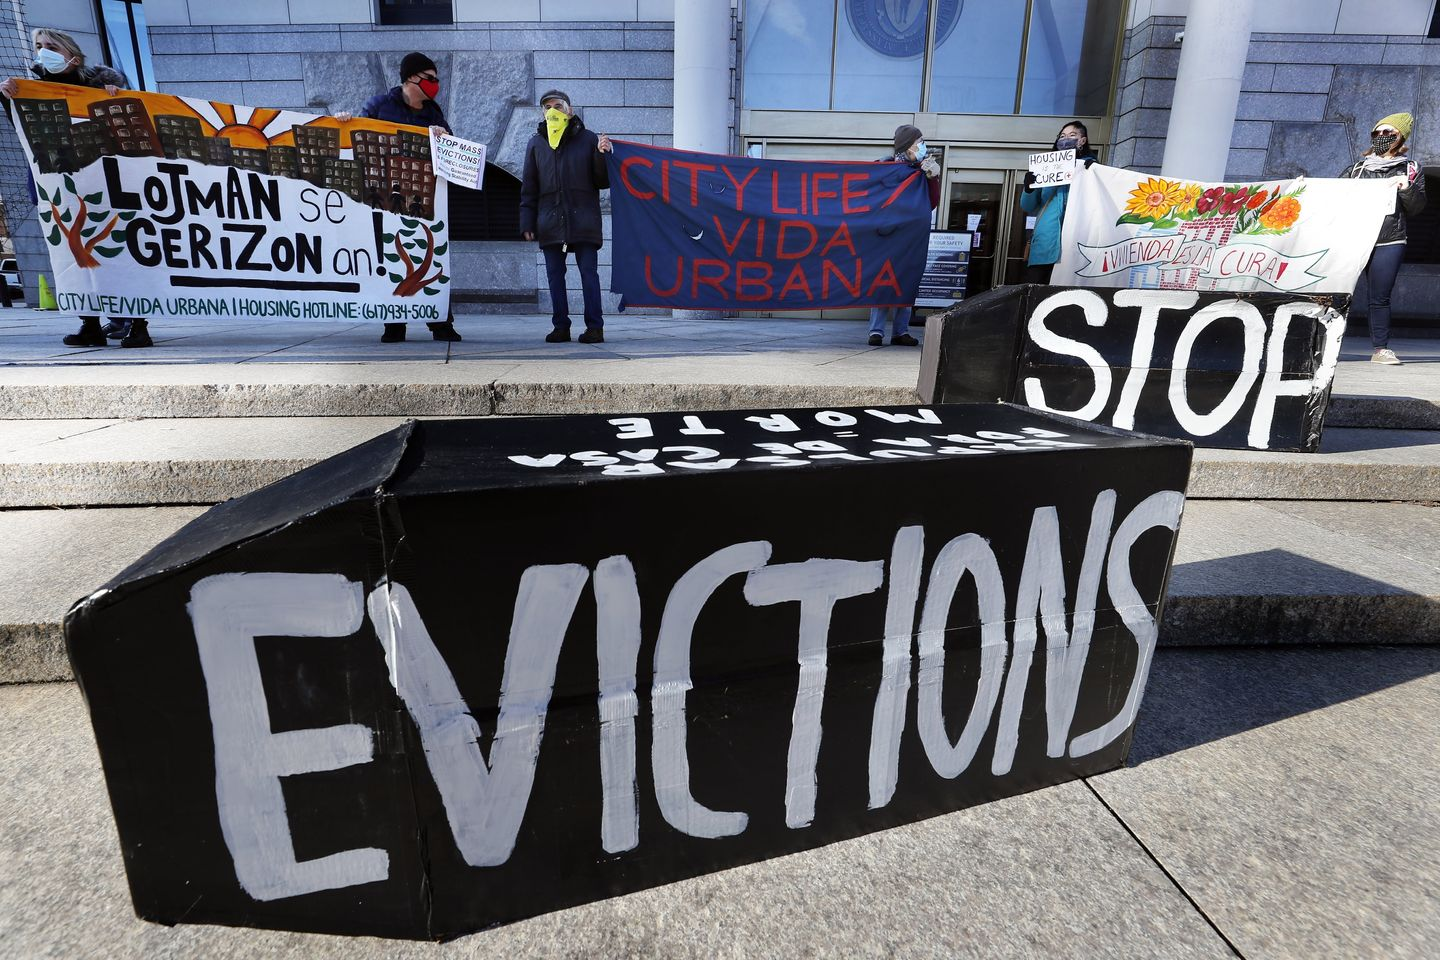 DOJ urges state courts to slow evictions amid housing crisis thumbnail